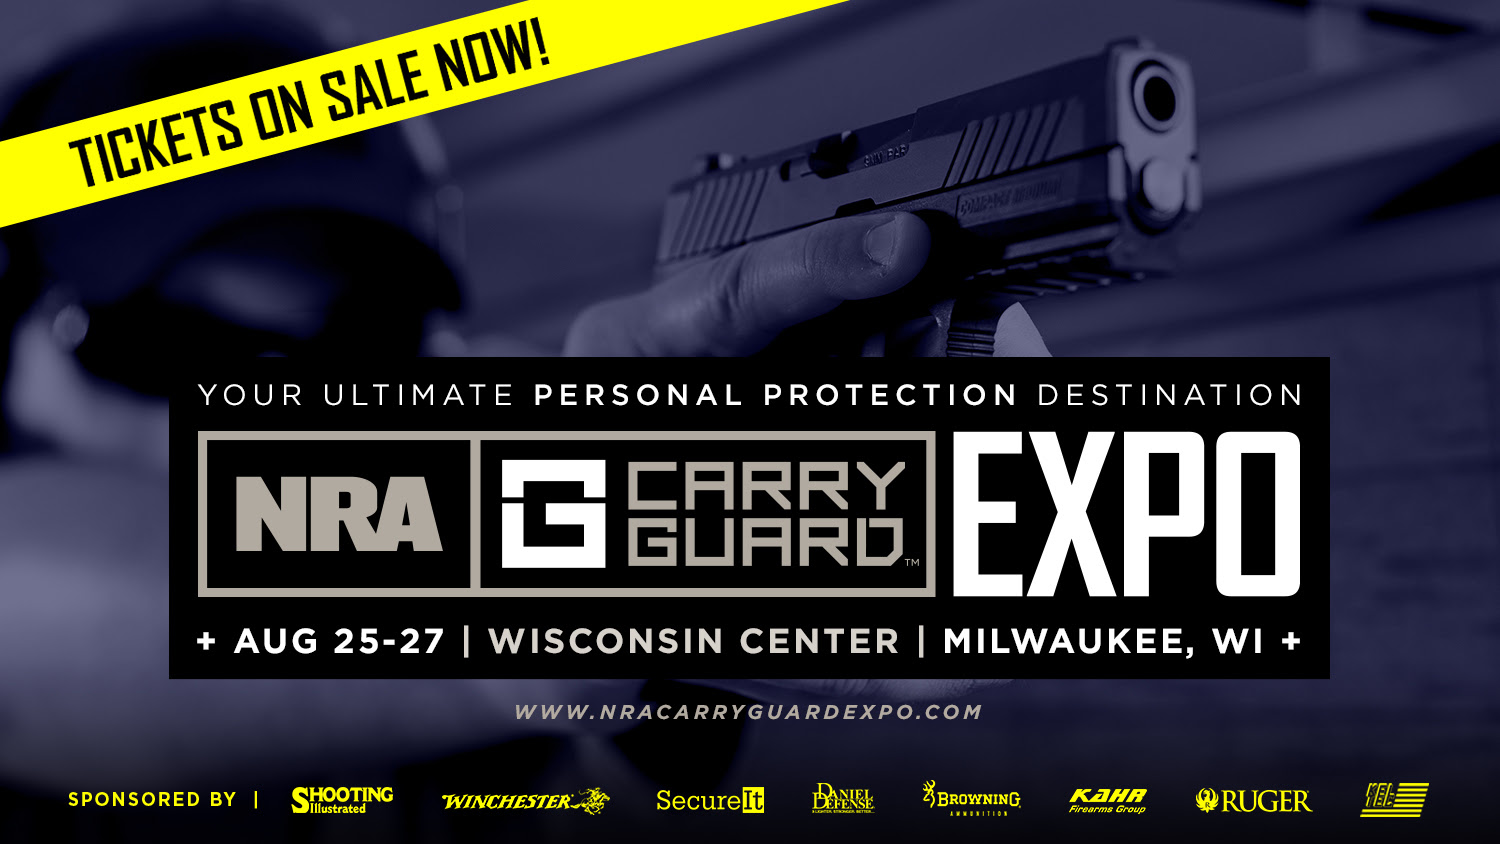 Tickets on sale for the NRA Carry Guard Expo!